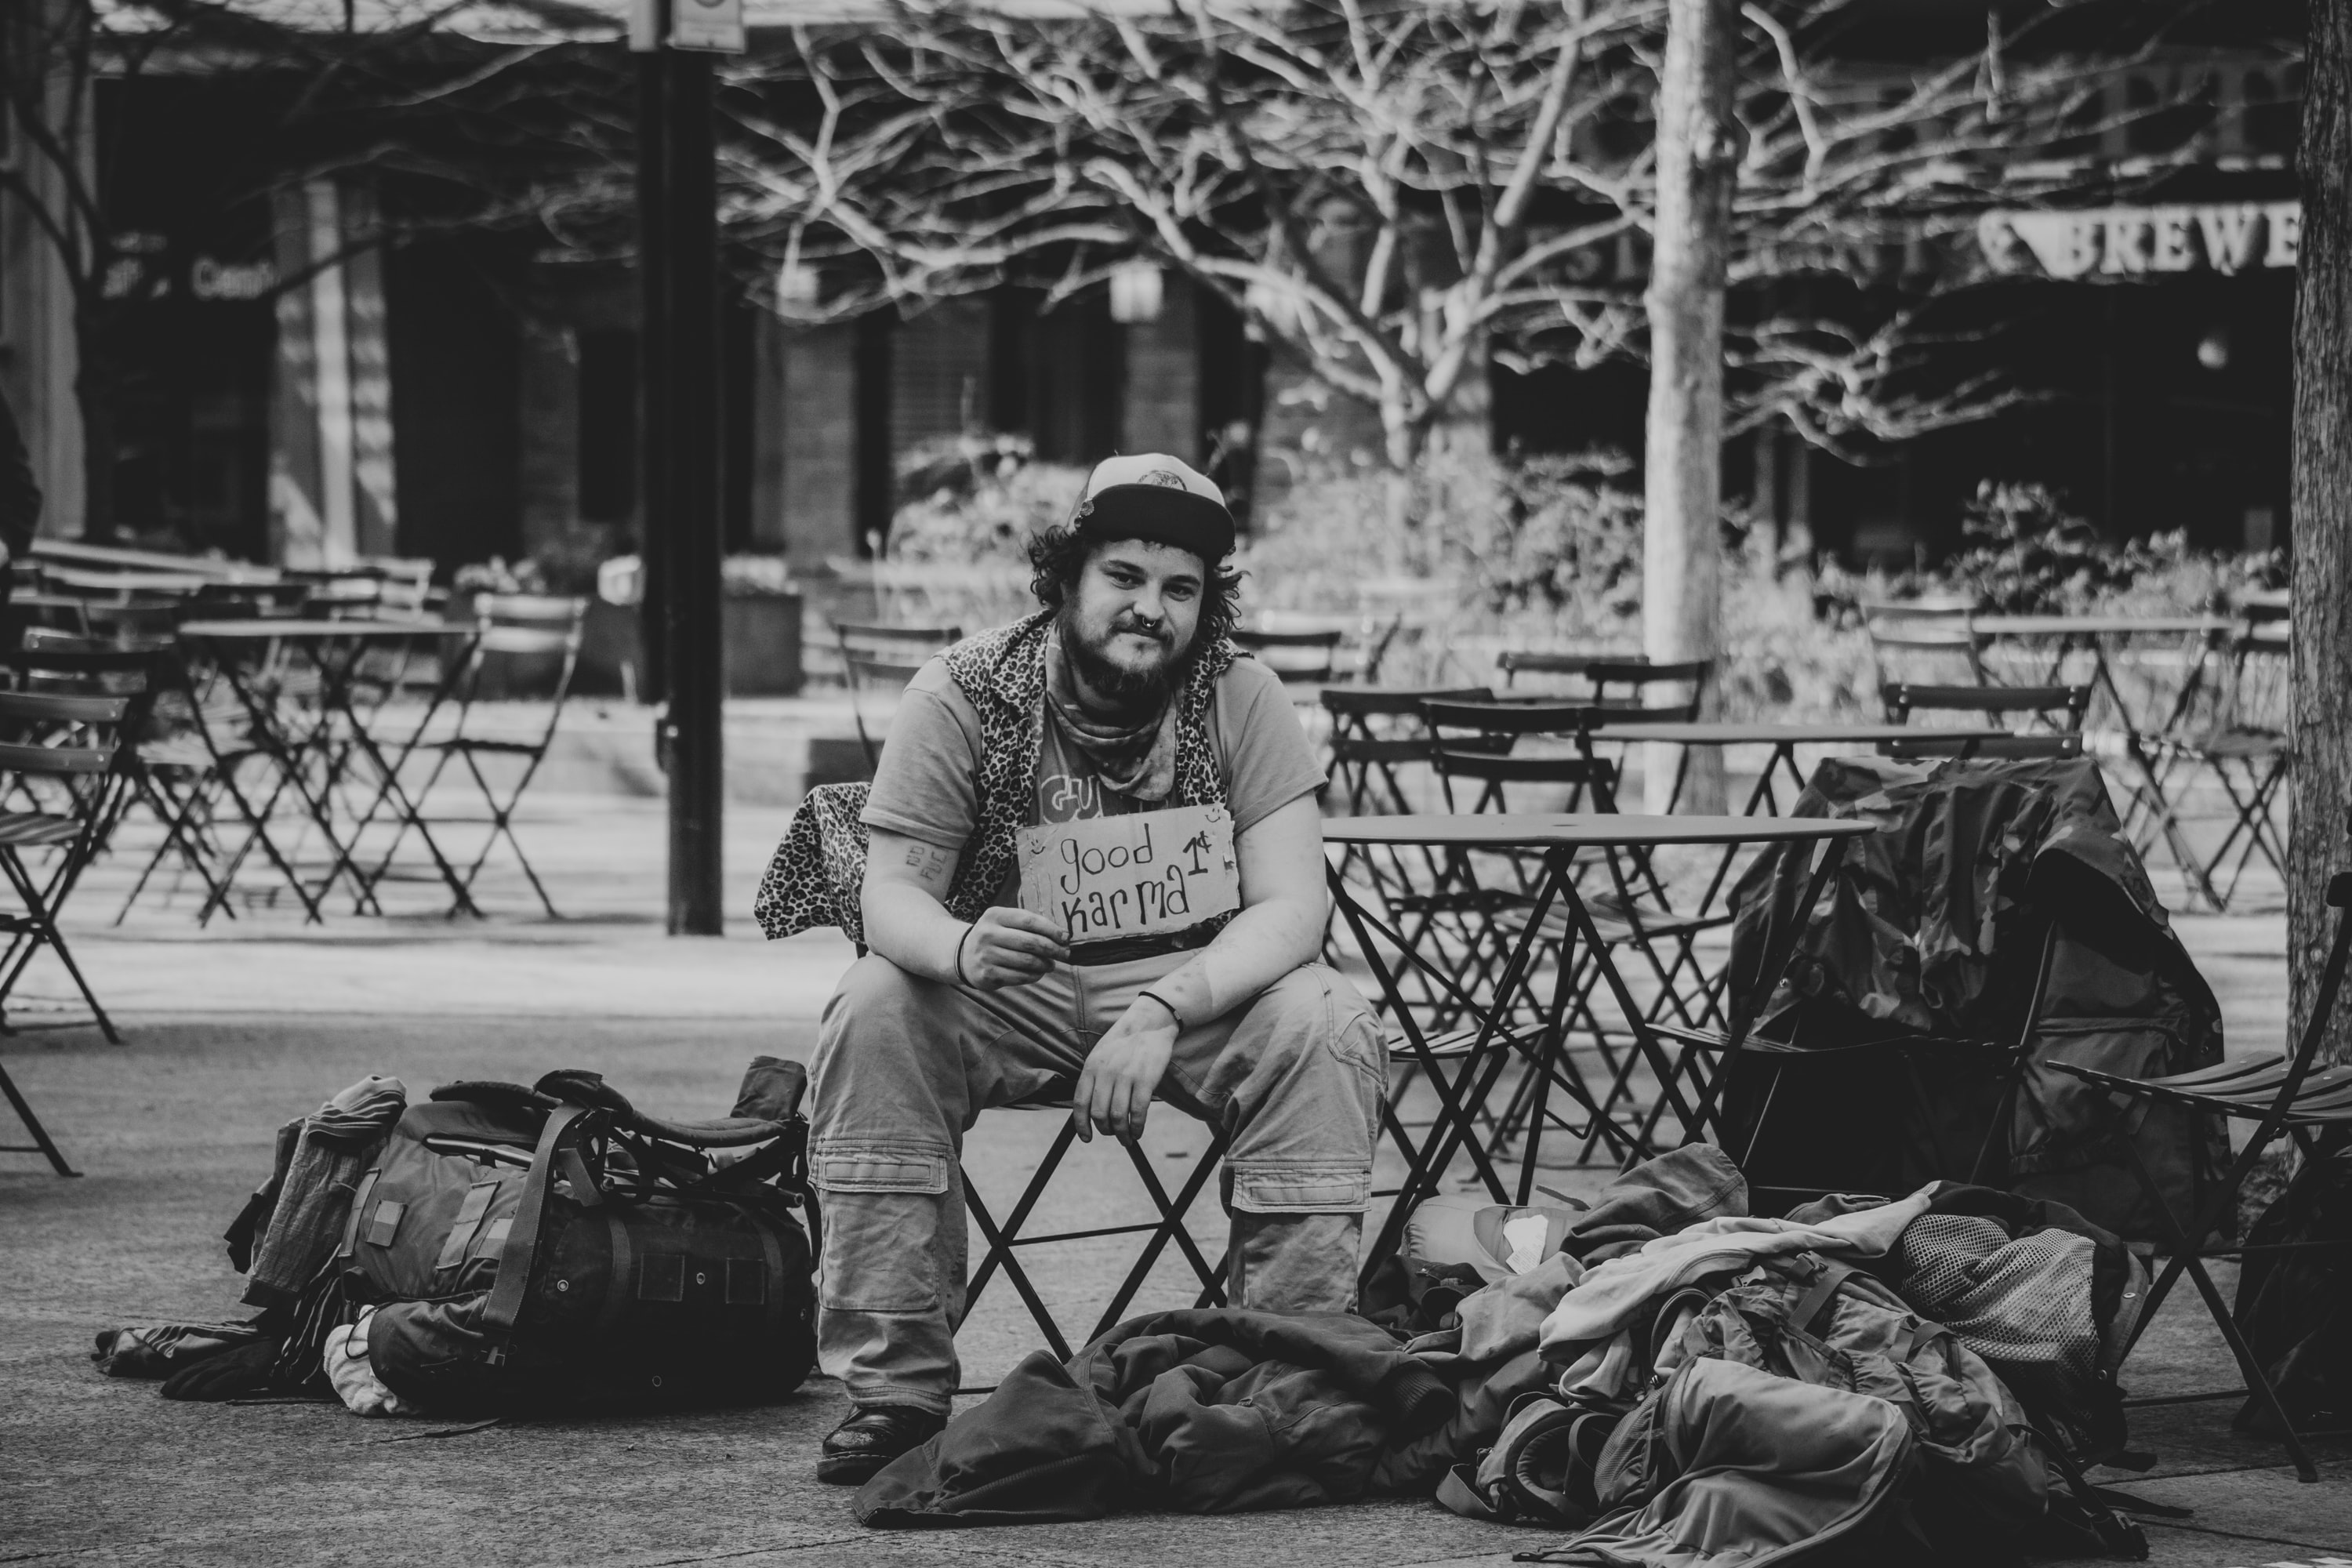 man smiling sitting on bench grayscale photography